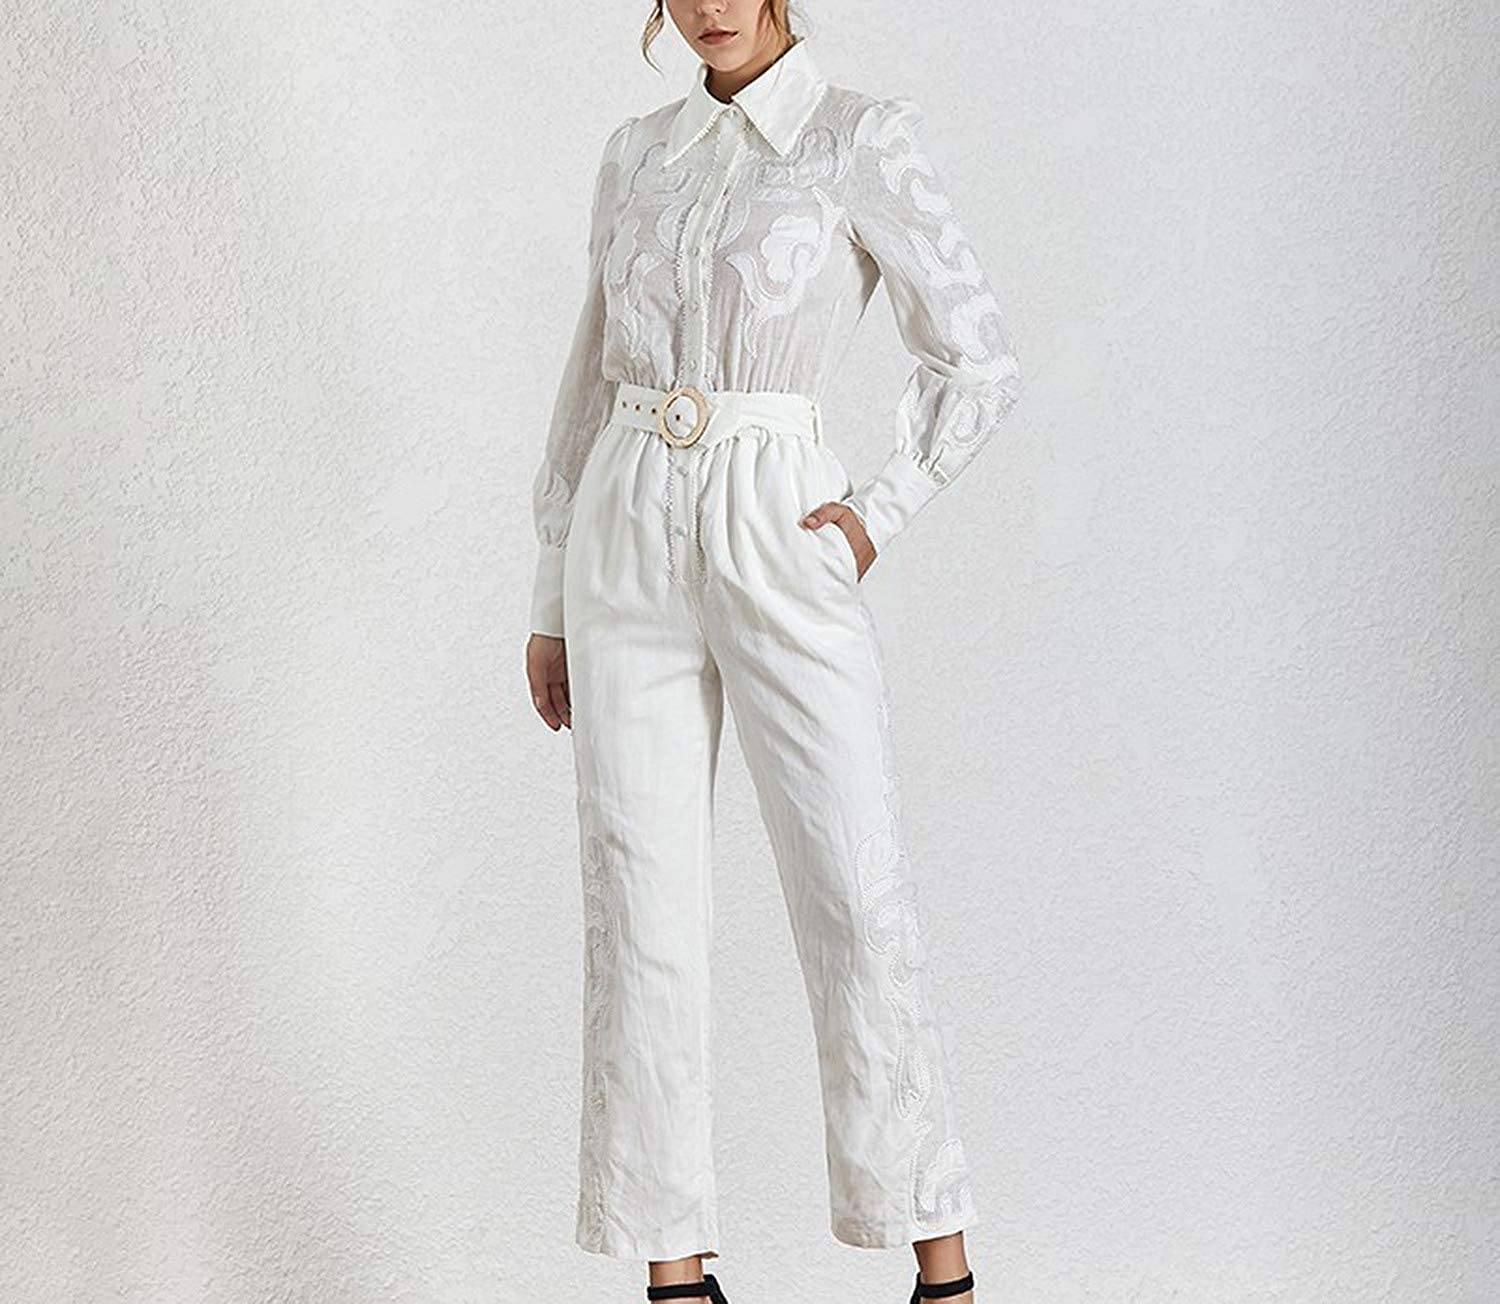 NorthEsther Print Solid Perspective Women Jumpsuit Lapel Long Sleeve High Waist Slim with Sashes Fashion Clothes Spring